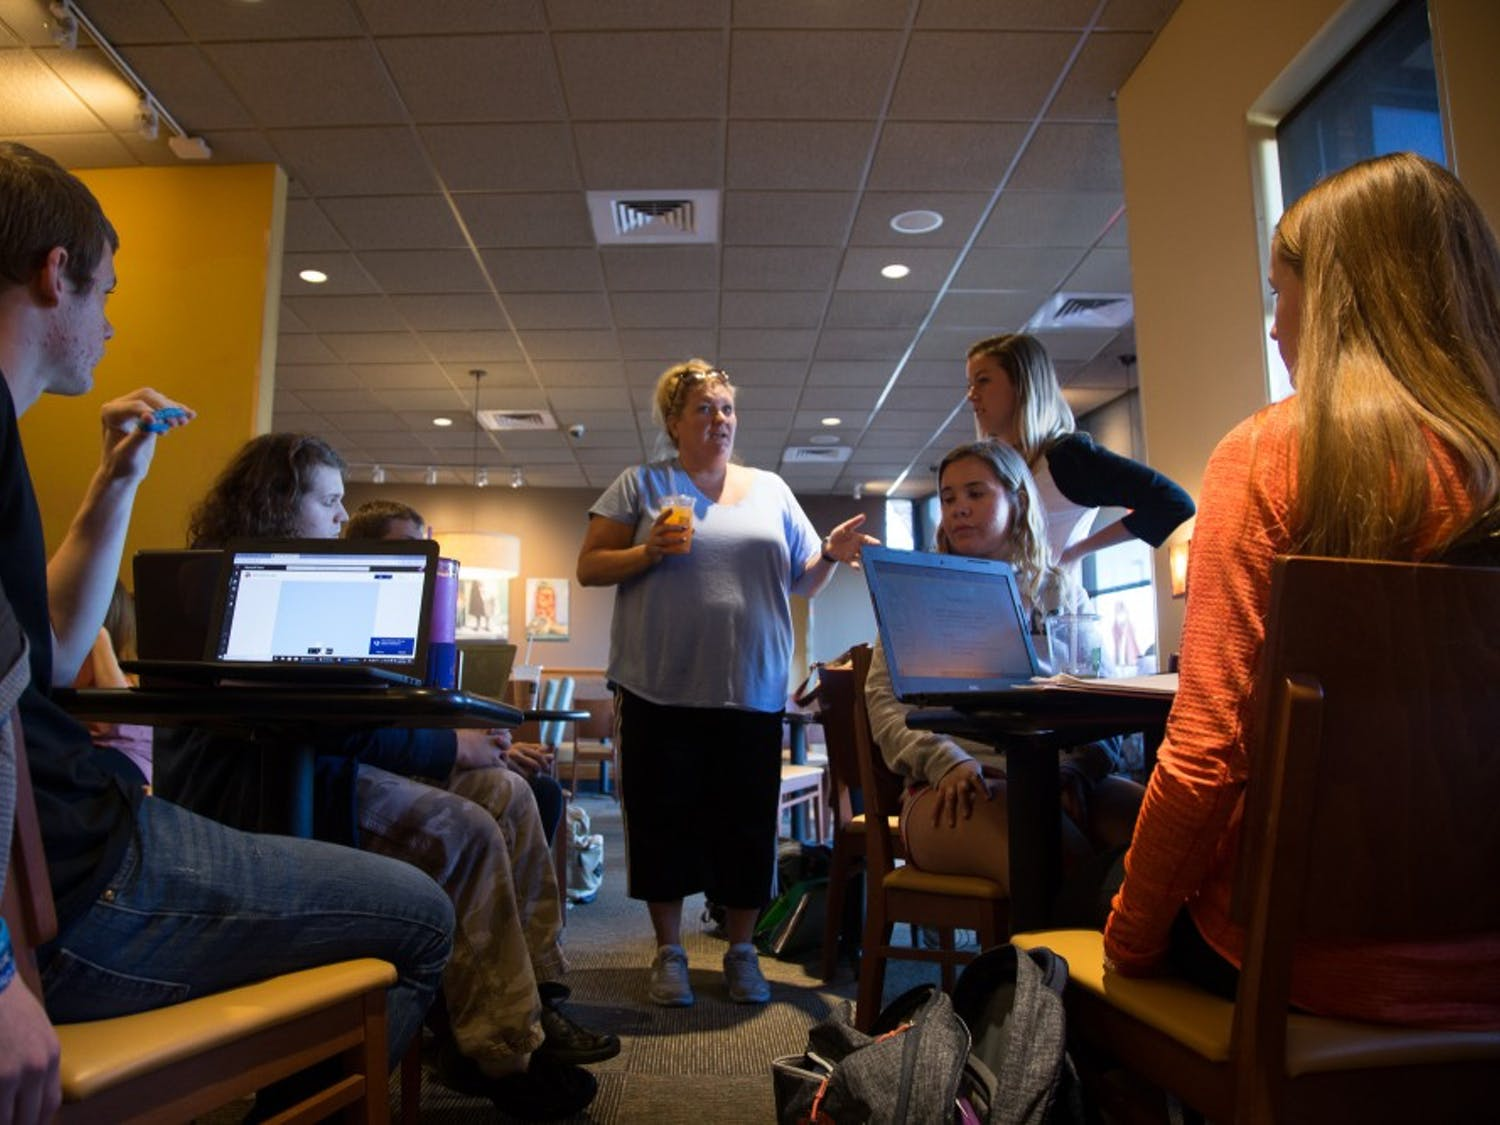 AP Biology teacher at White Oak High School, Tayna Larose, lectures to her AP BioStats combined class at Panera on Oct. 29, 2018. White Oak High School was closed for 35 days due to flooding from Hurricane Florence. Many teachers offered pop-up classes and tutoring in places varying from Panera to churches across the town.